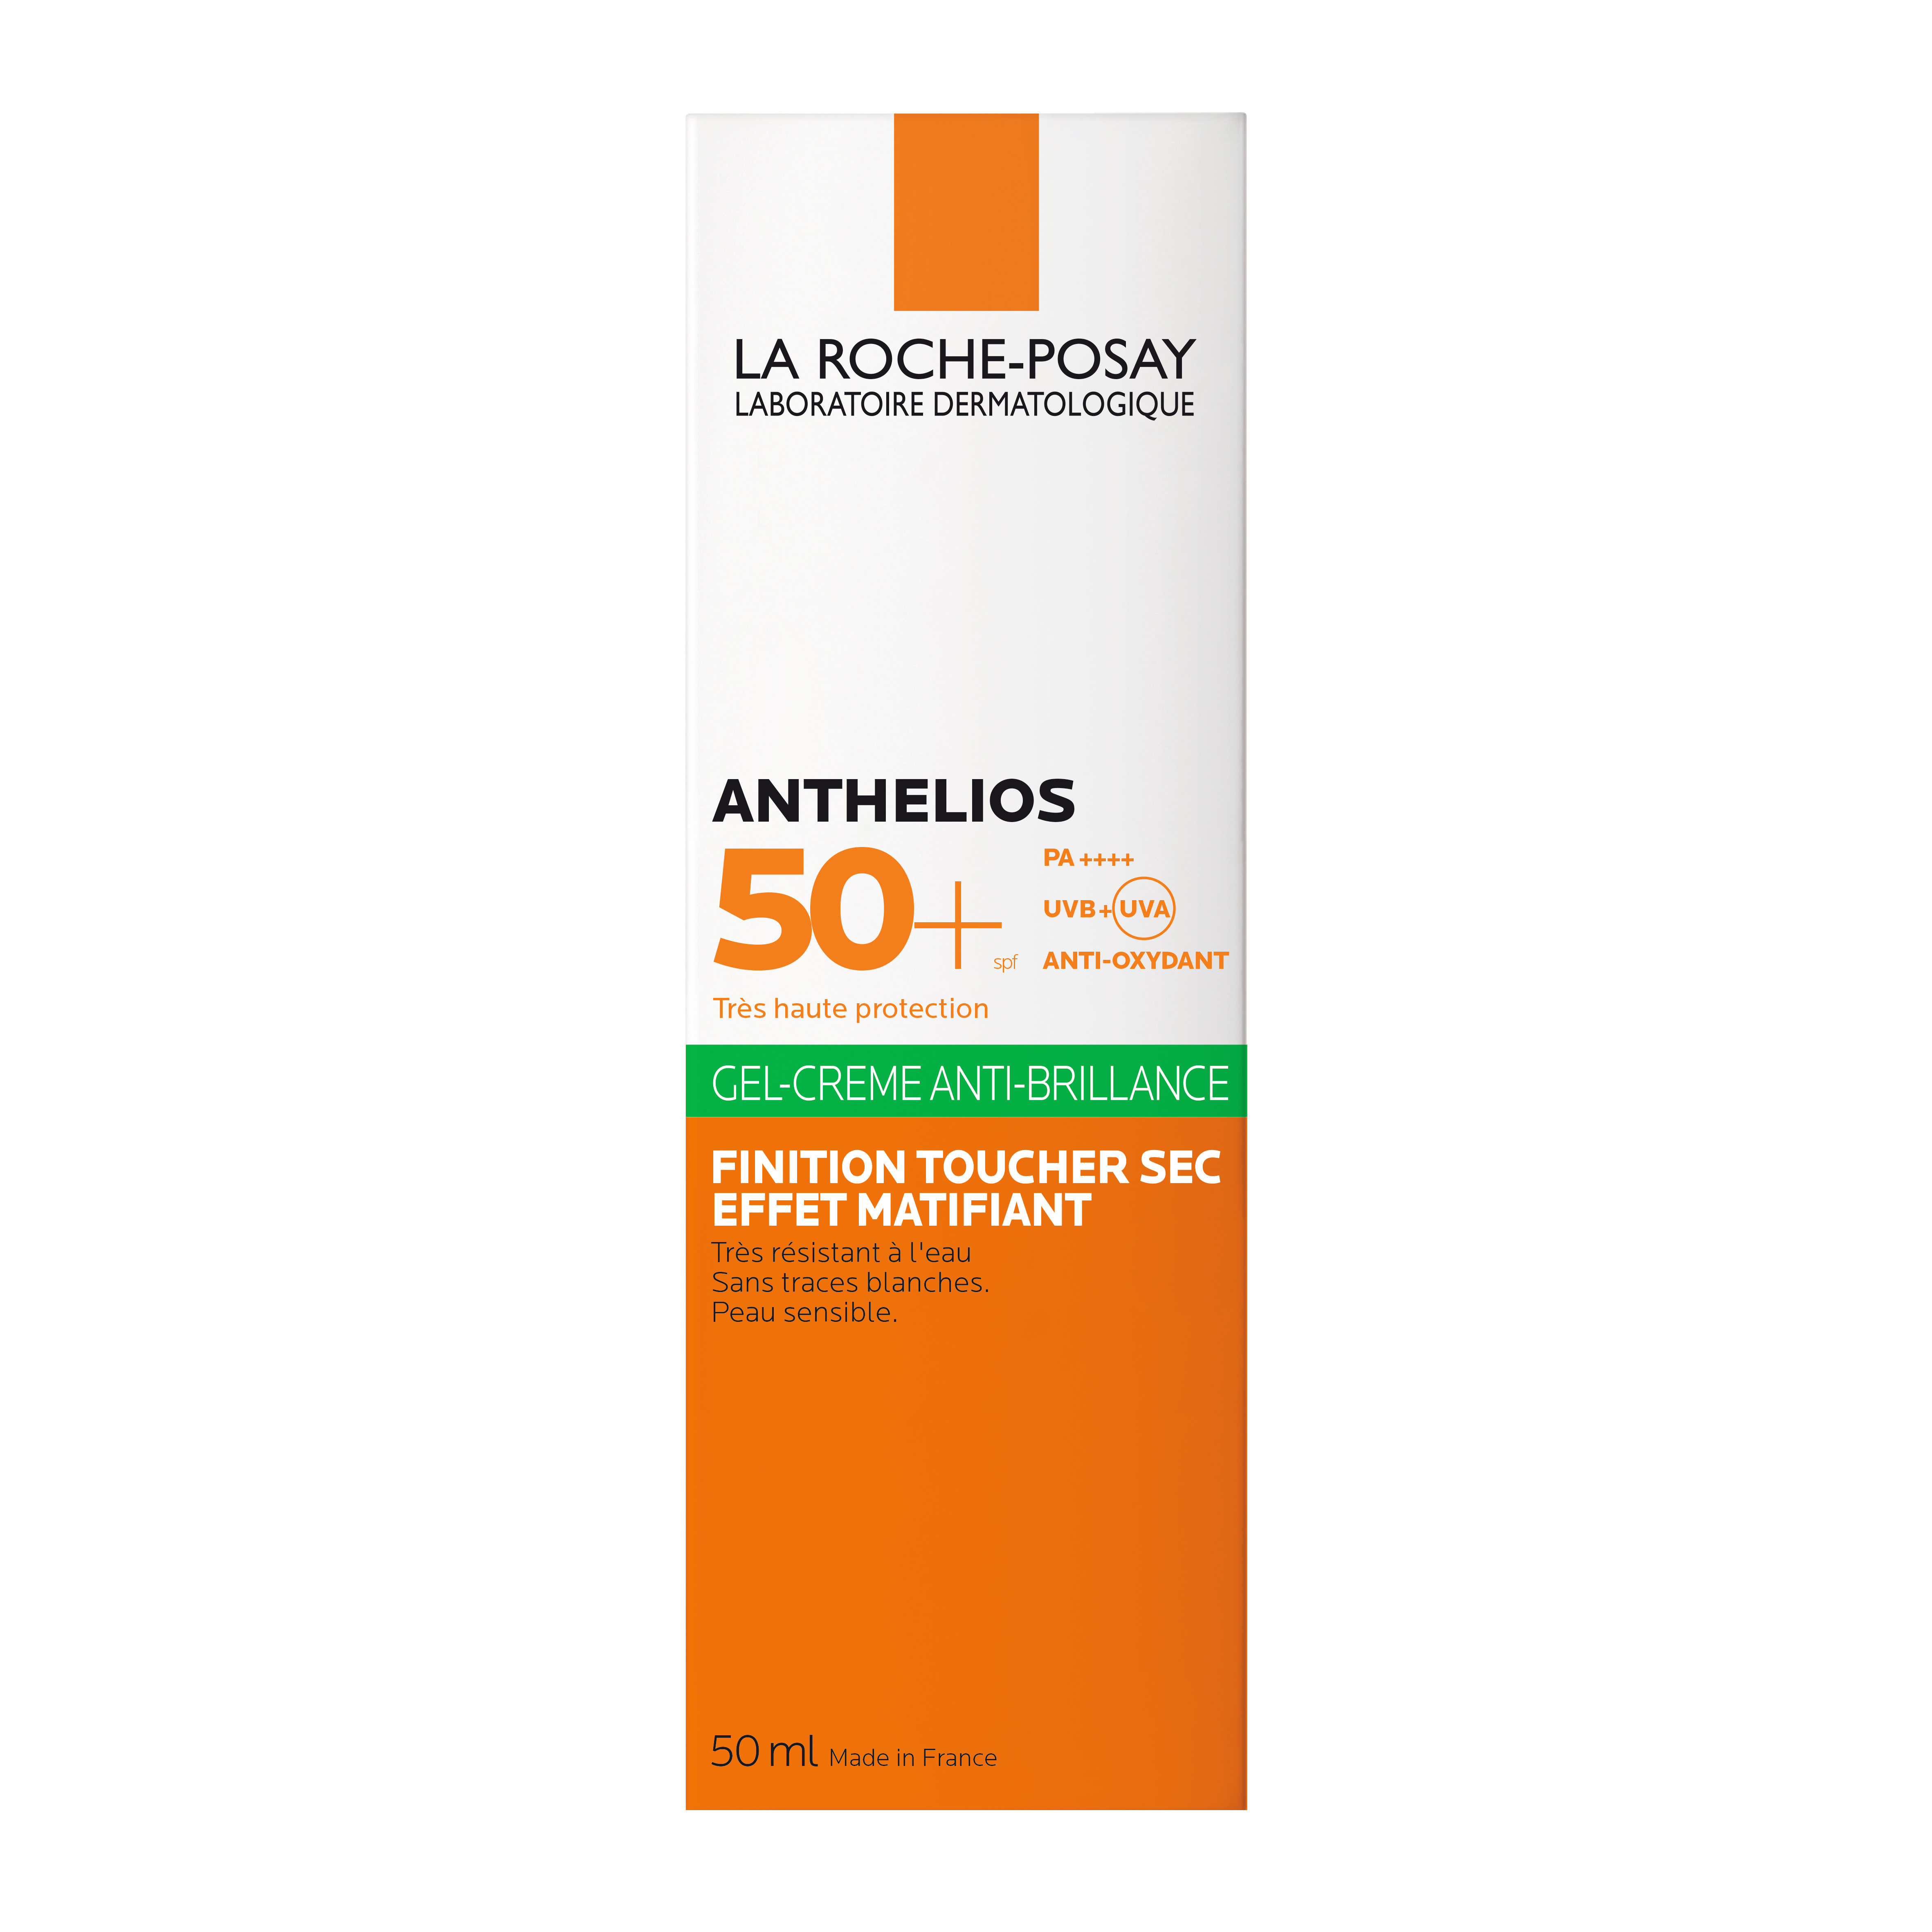 La Roche-Posay Anthelios Gel-Crème Dry Touch Spf 50 (50ml)